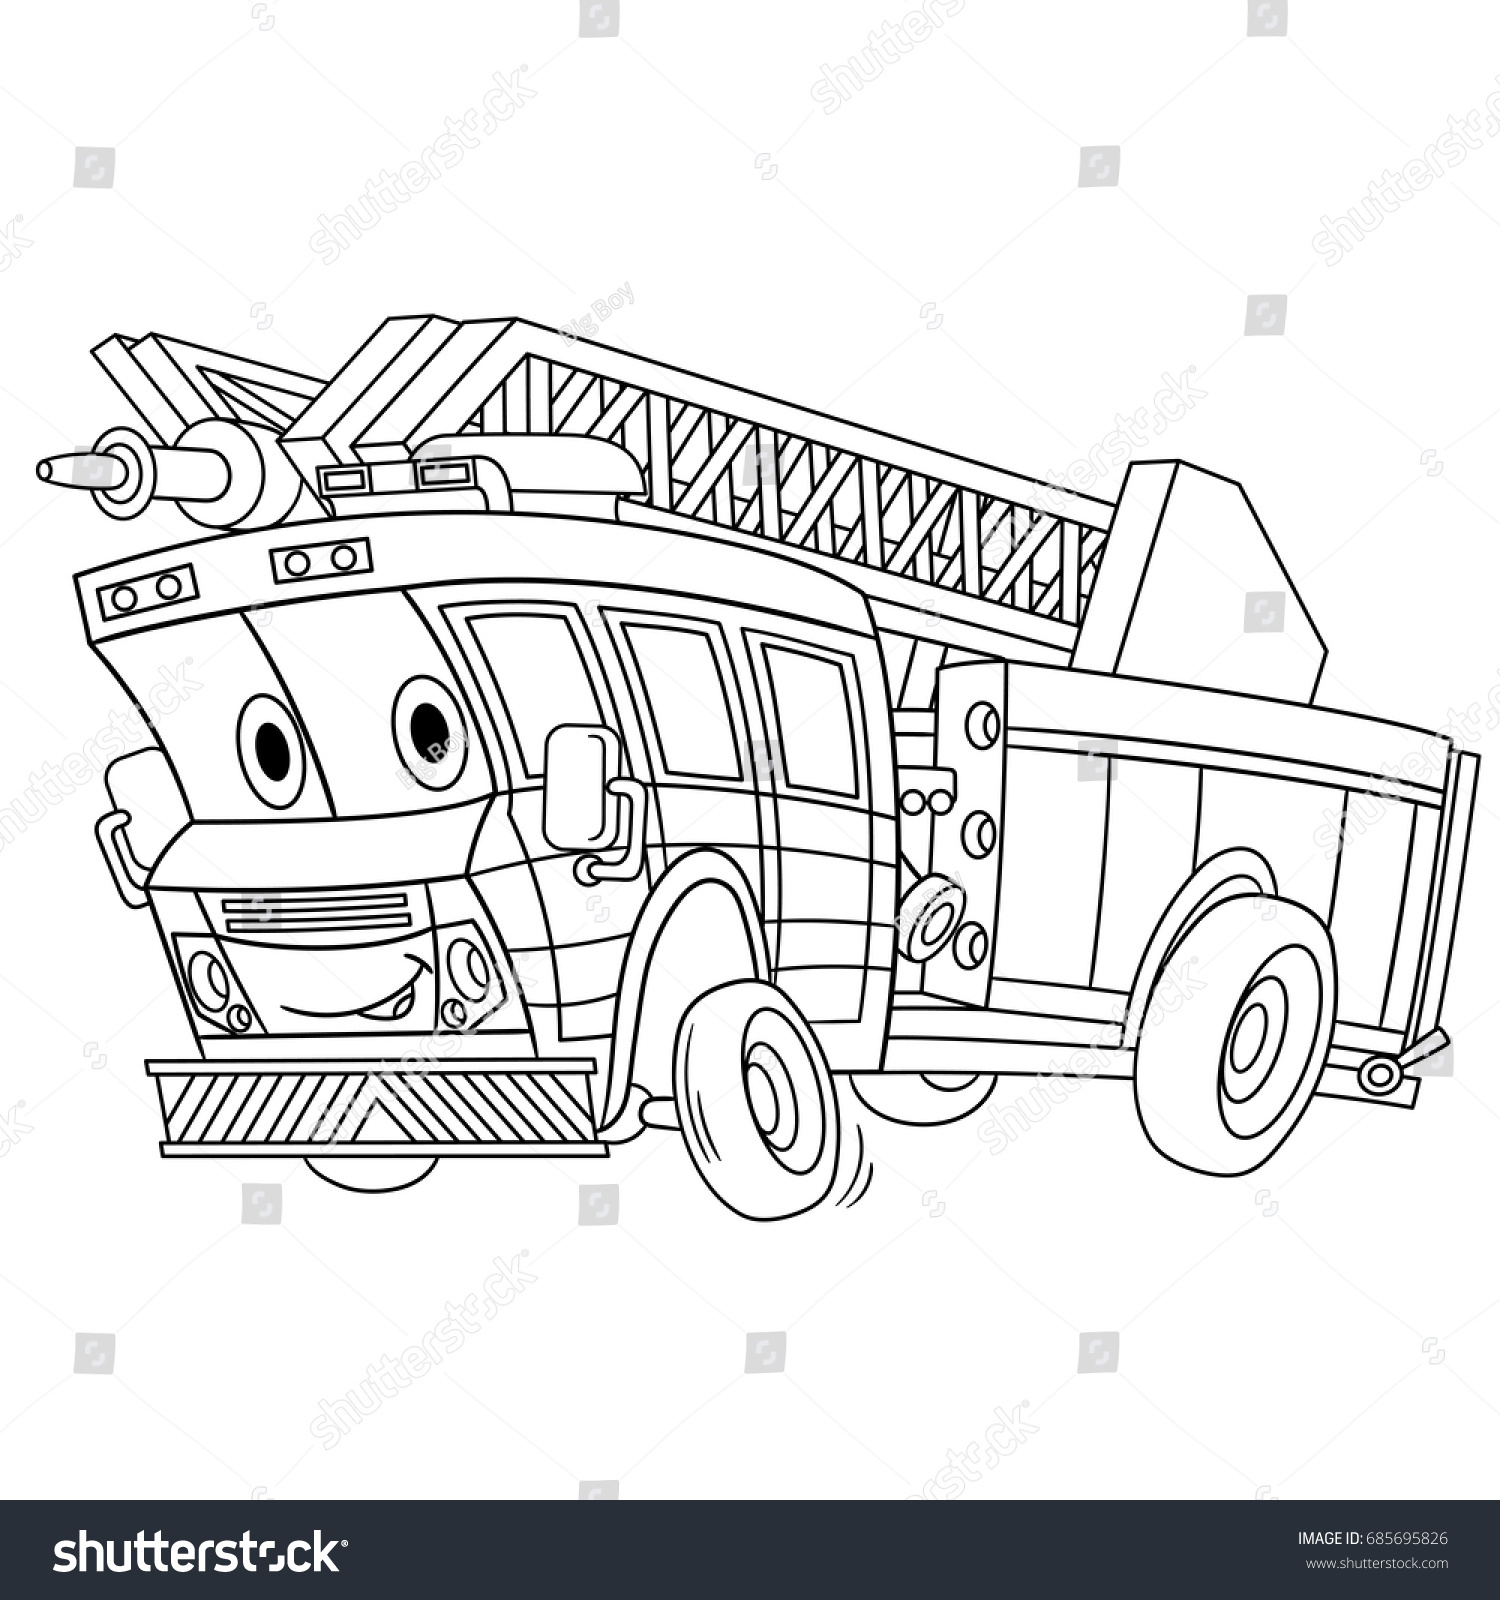 Coloring page of firetruck for preschool - a-k-b.info